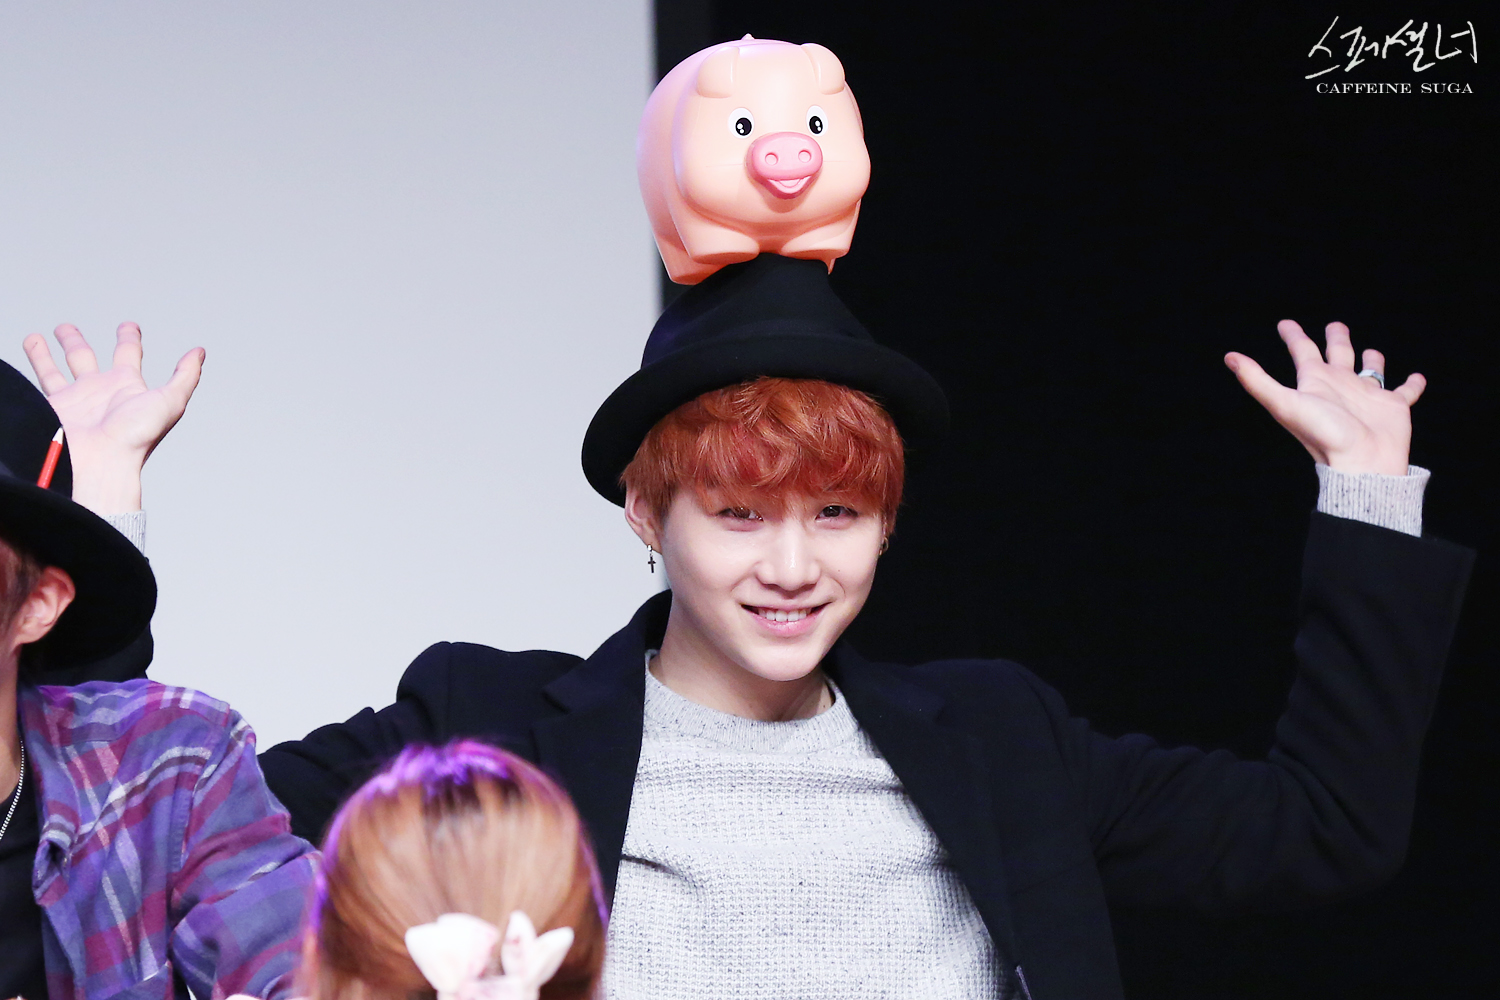 noona meroyan: 15 Reasons You Should Be In Love With Suga